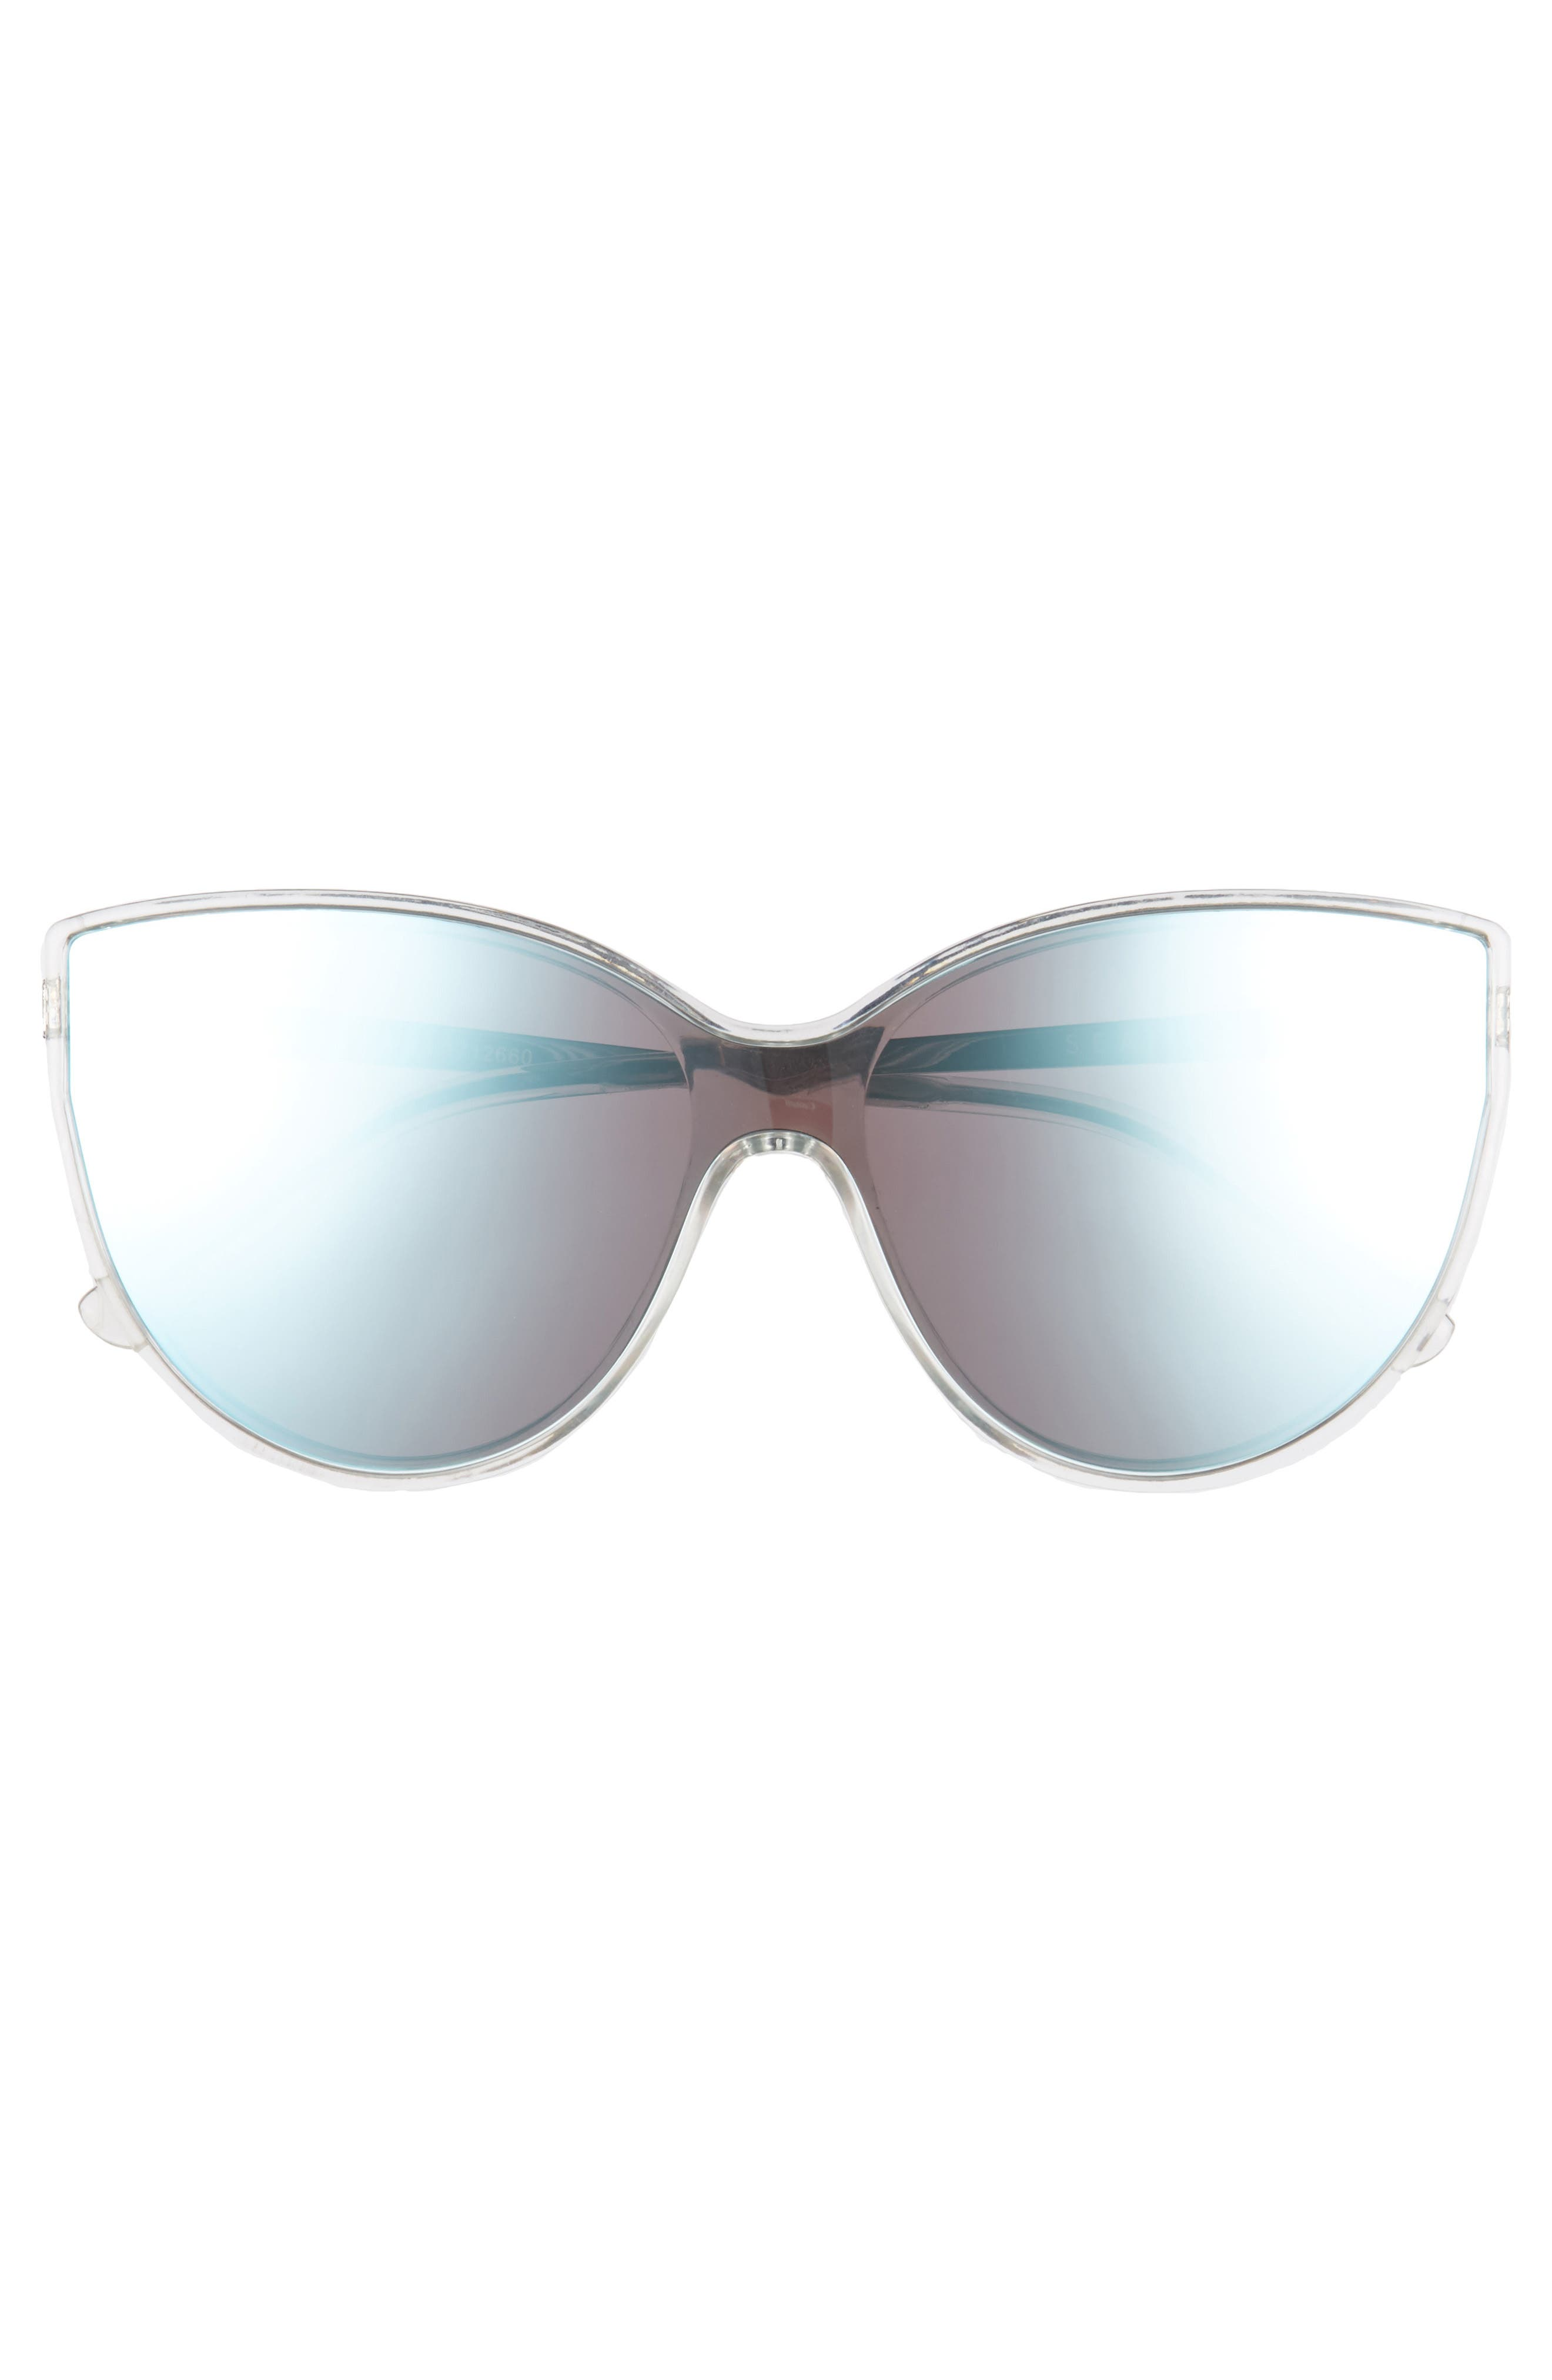 Tortola 60mm Cat Eye Sunglasses,                             Alternate thumbnail 3, color,                             Clear